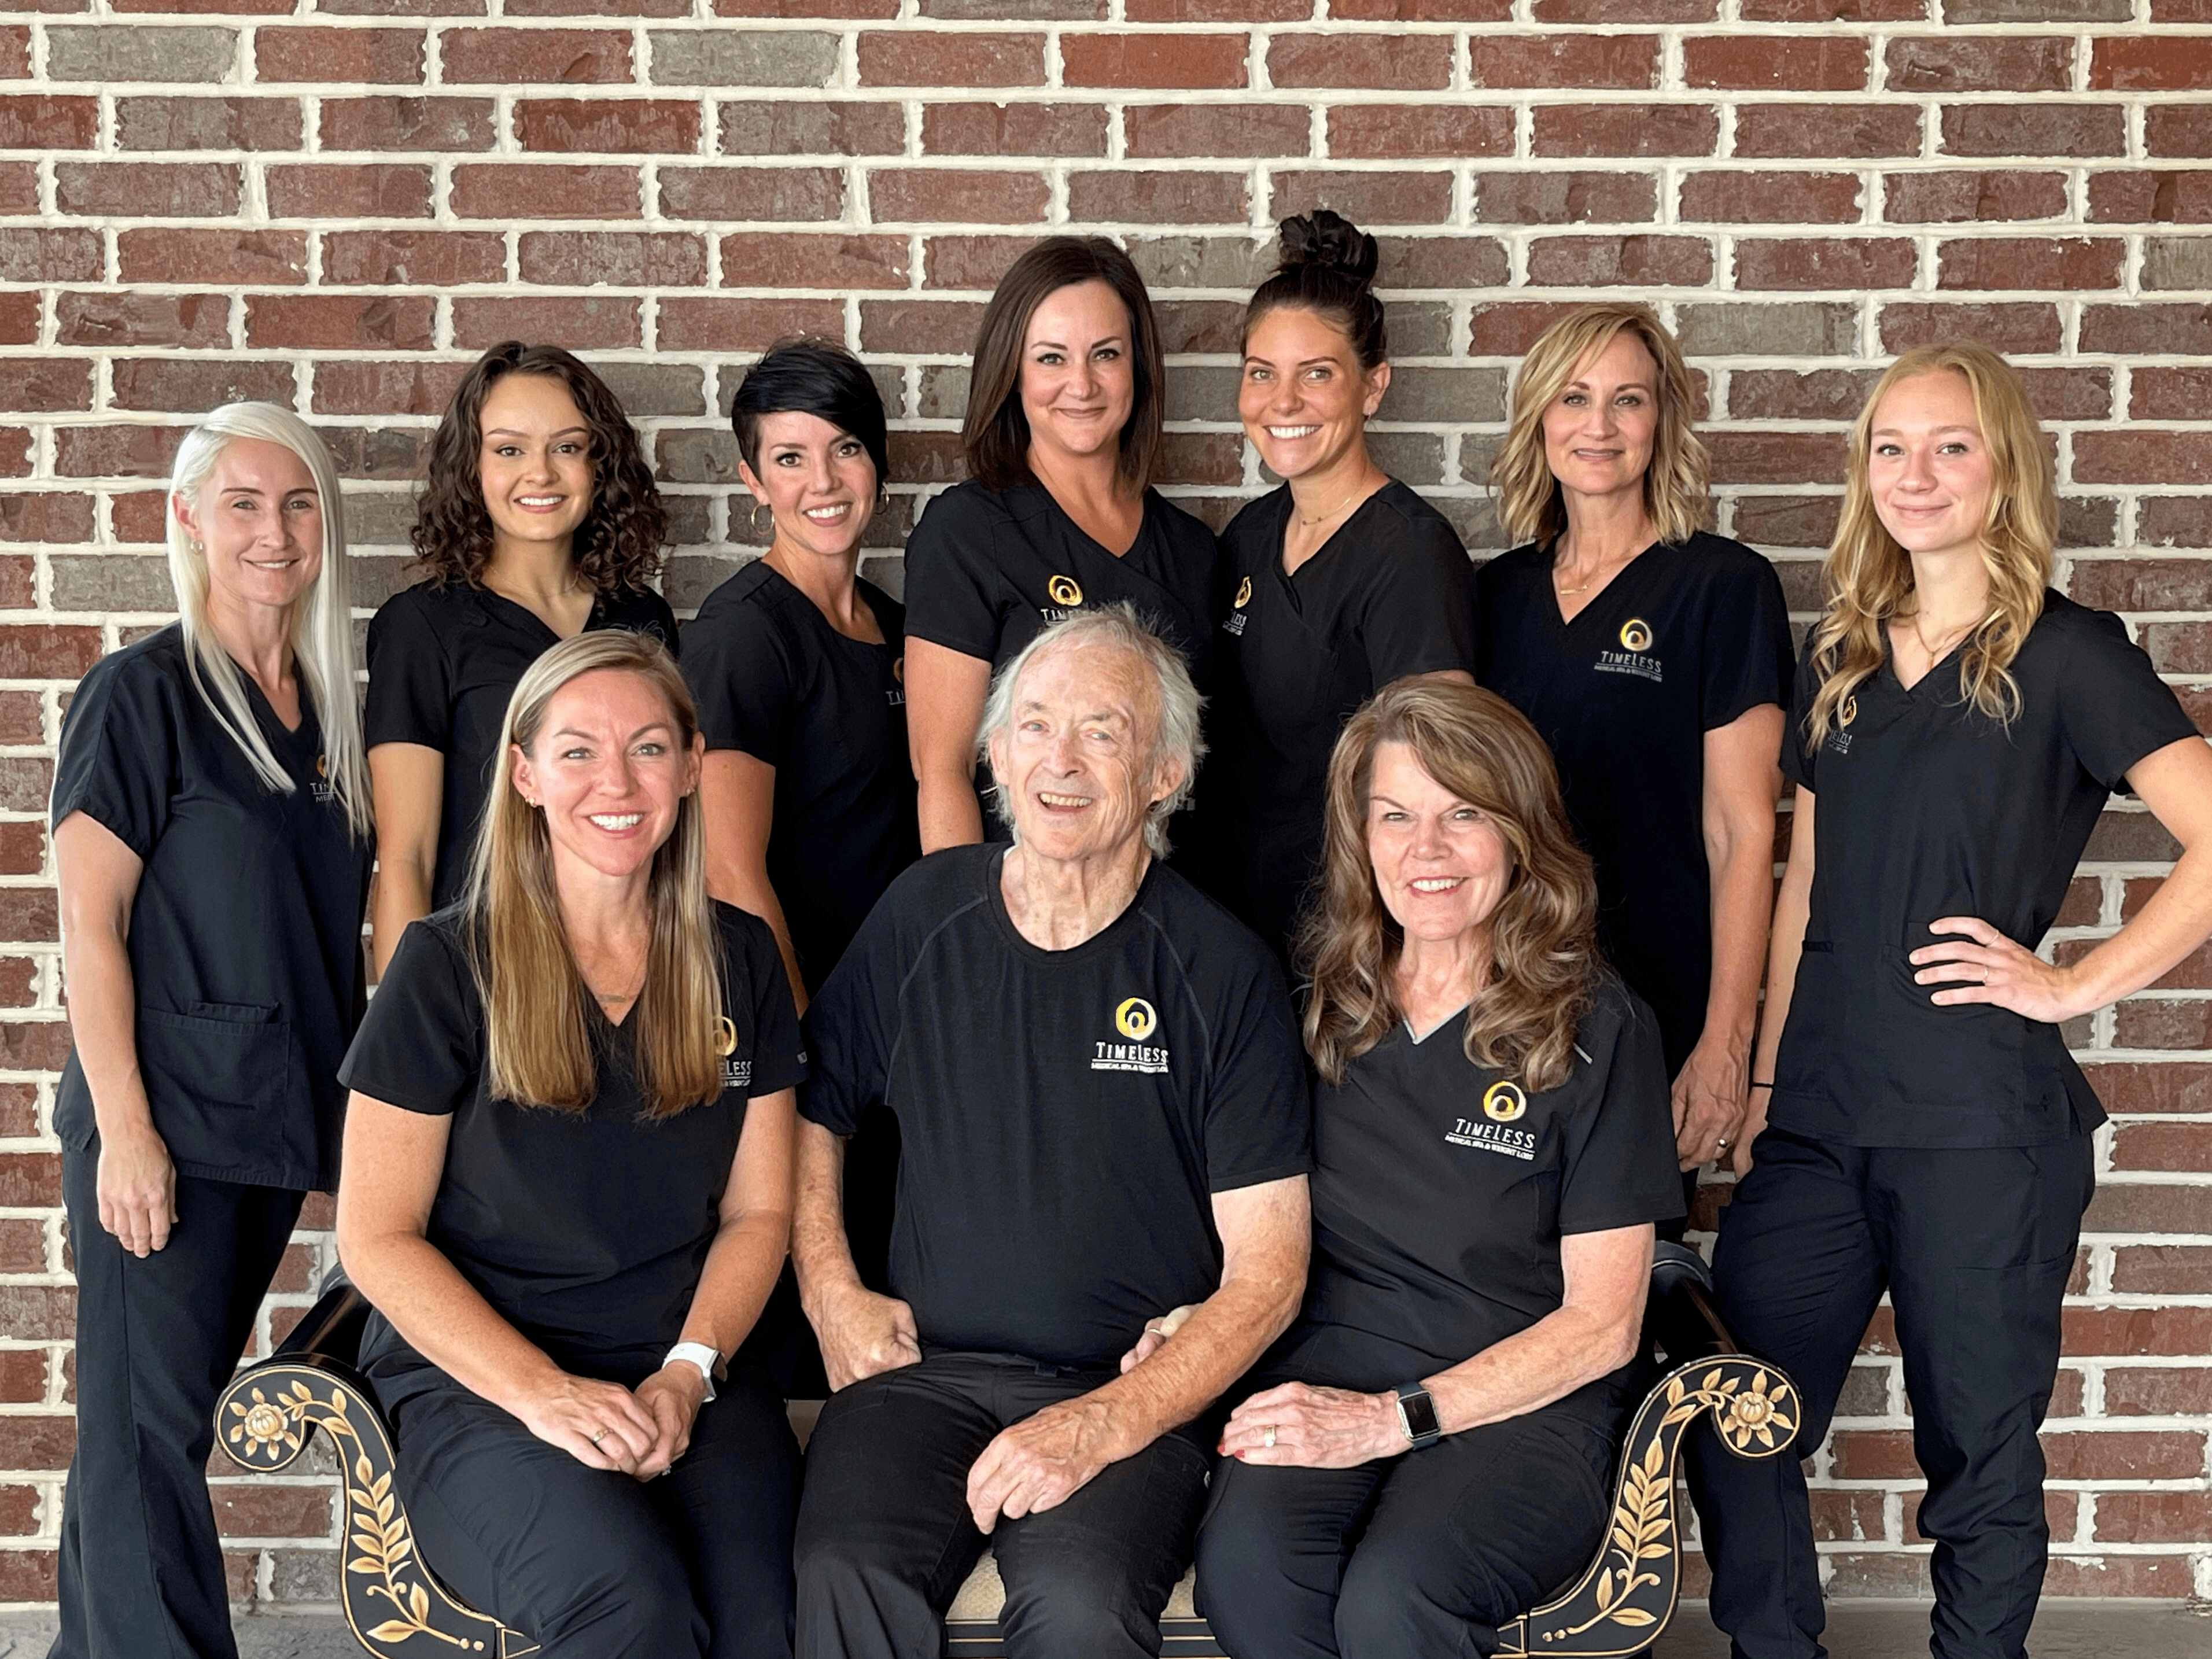 The staff of TimeLess Medical Spa and Weight Loss Clinic in Ogden, UT